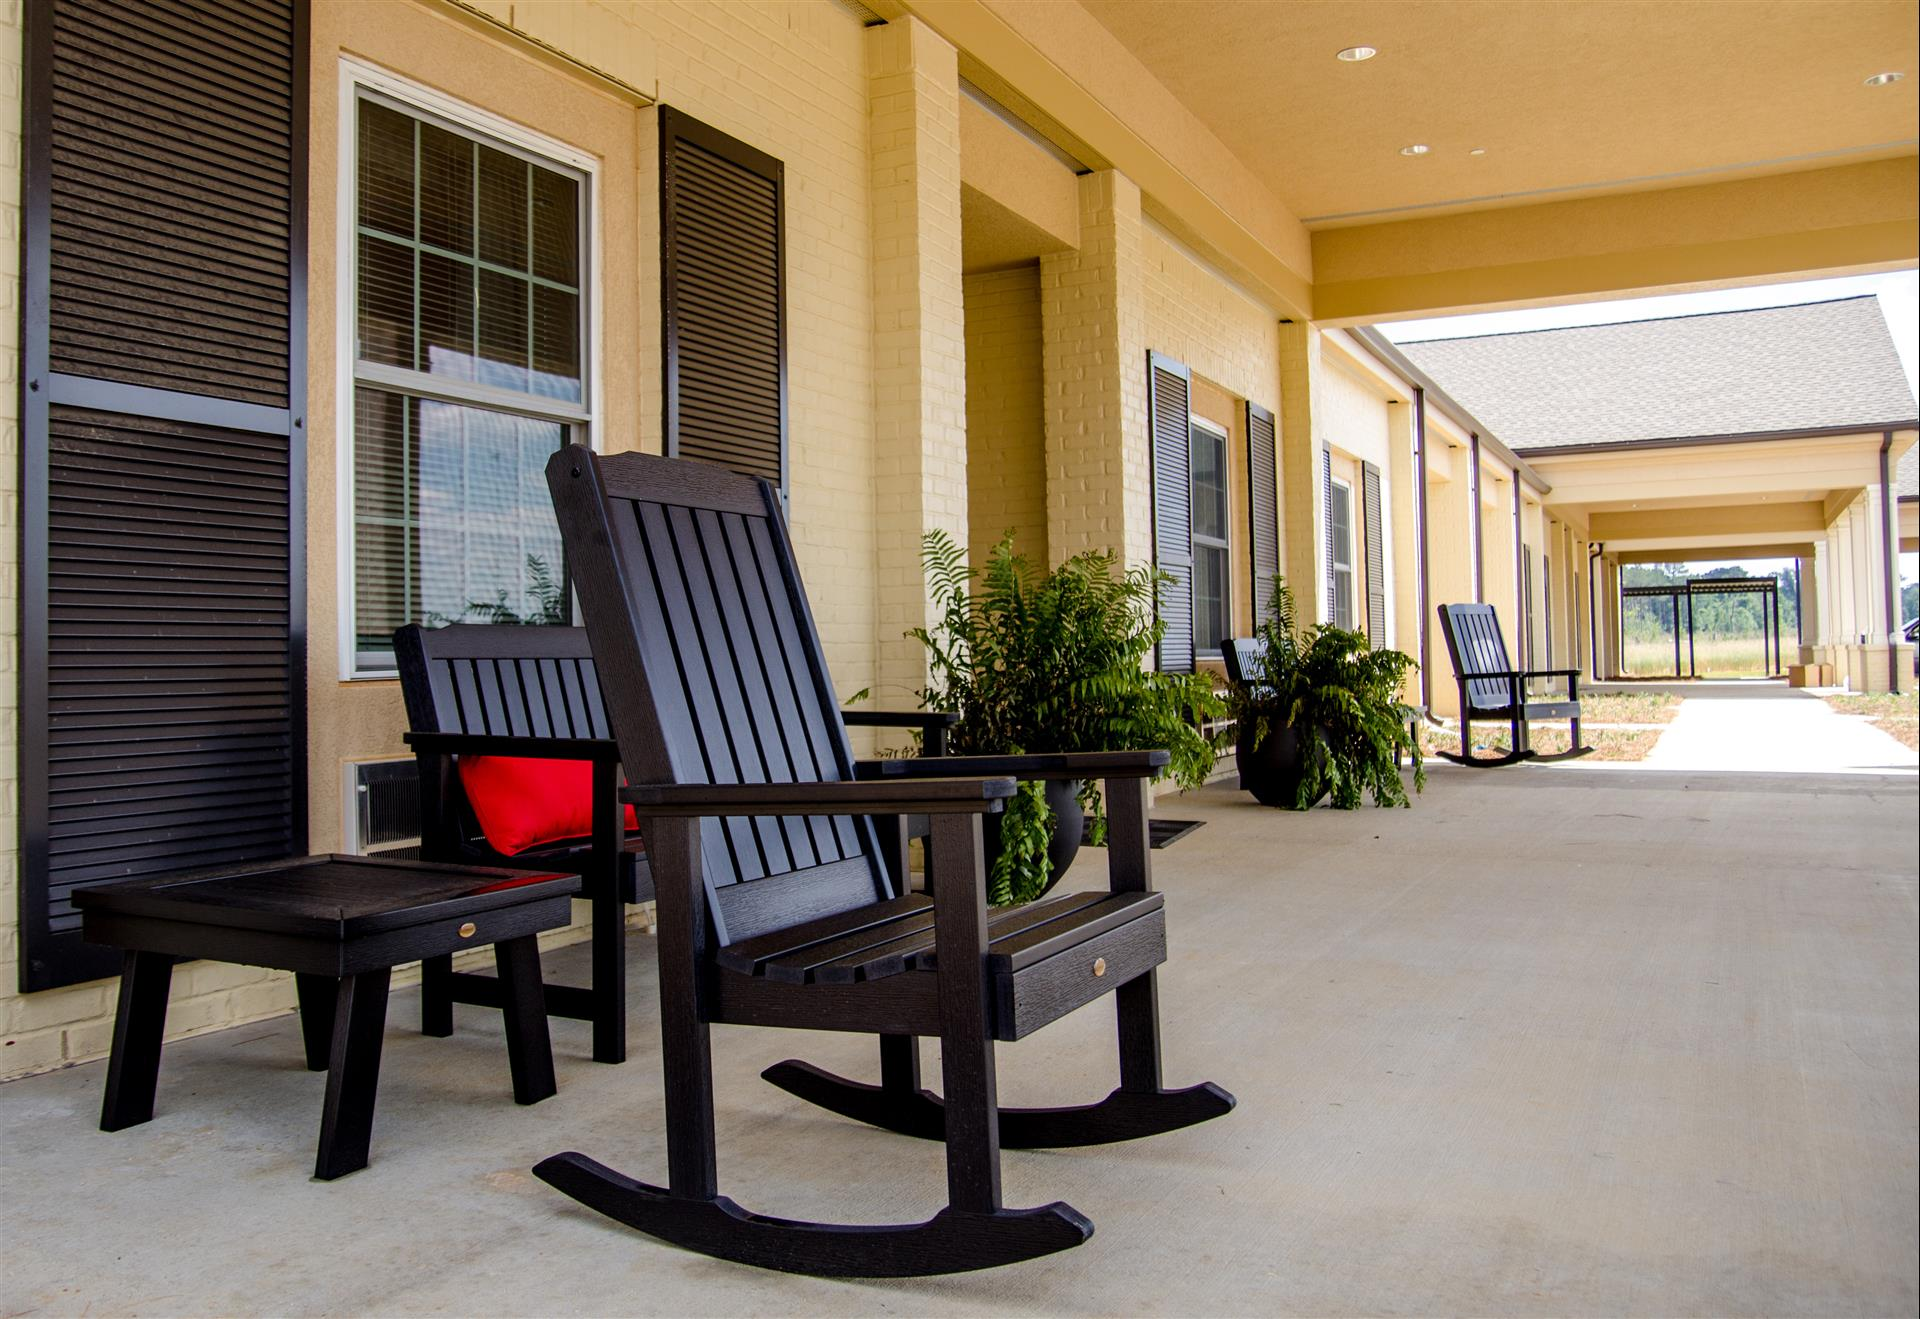 5 Refreshing Decor Ideas for Your Assisted Living Apartment